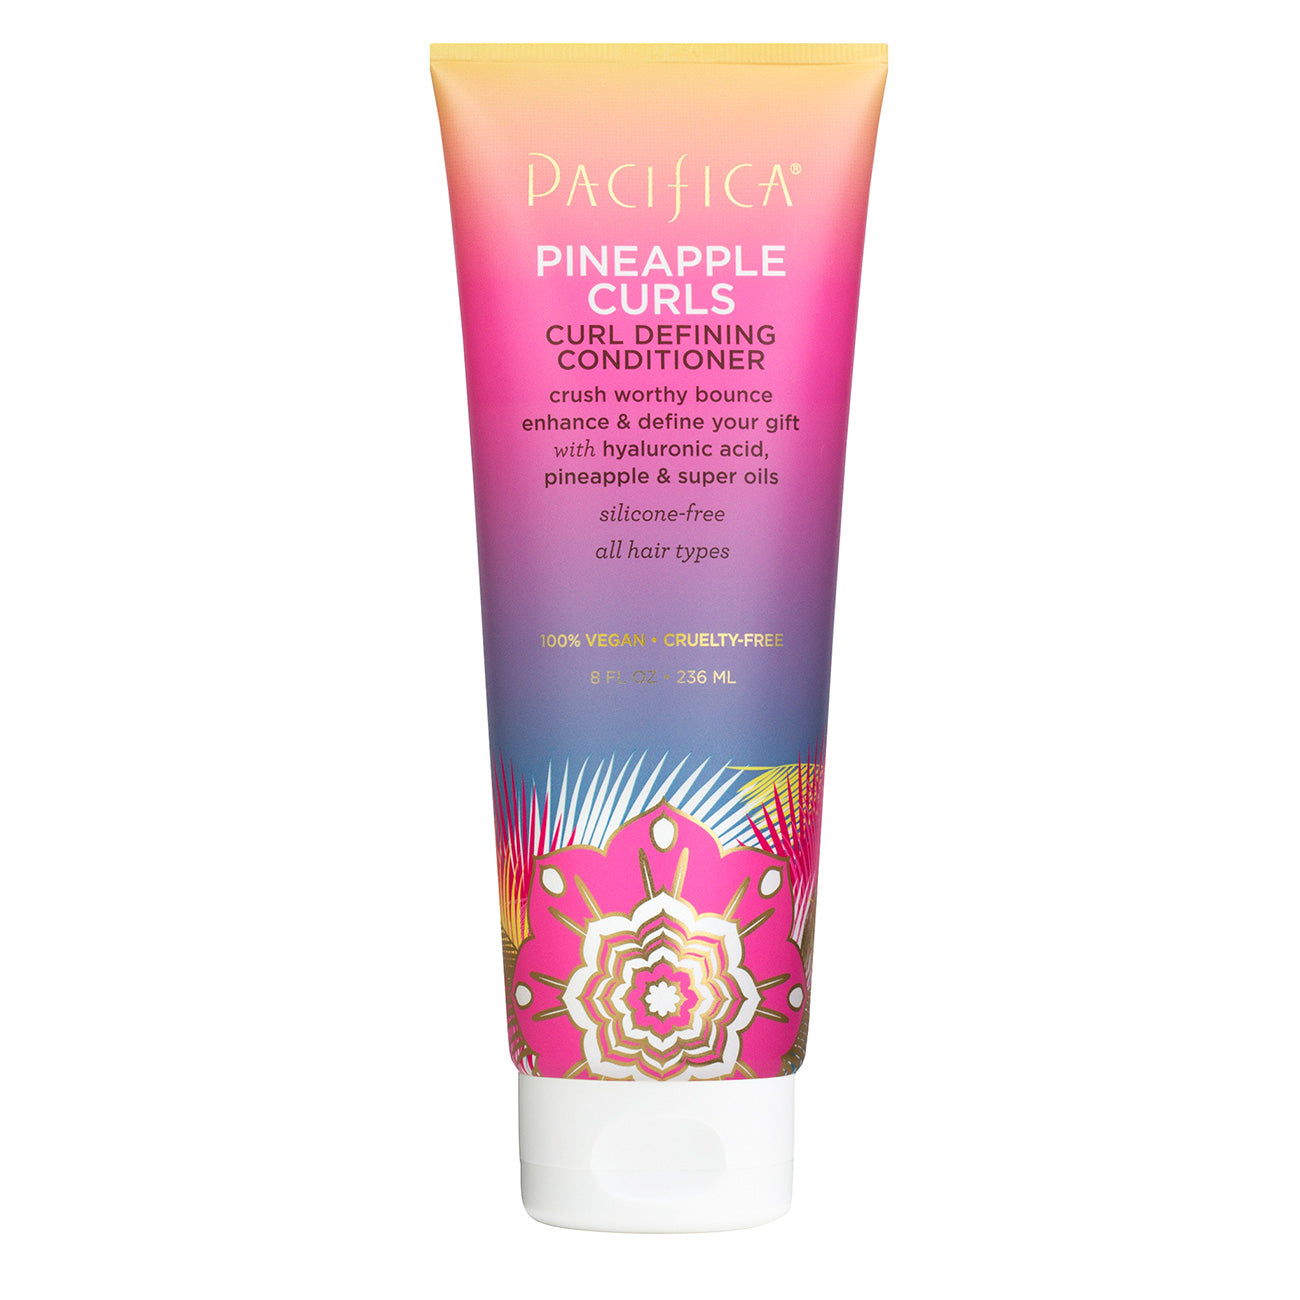 Pineapple Curls Curl Defining Conditioner - Haircare - Pacifica Beauty